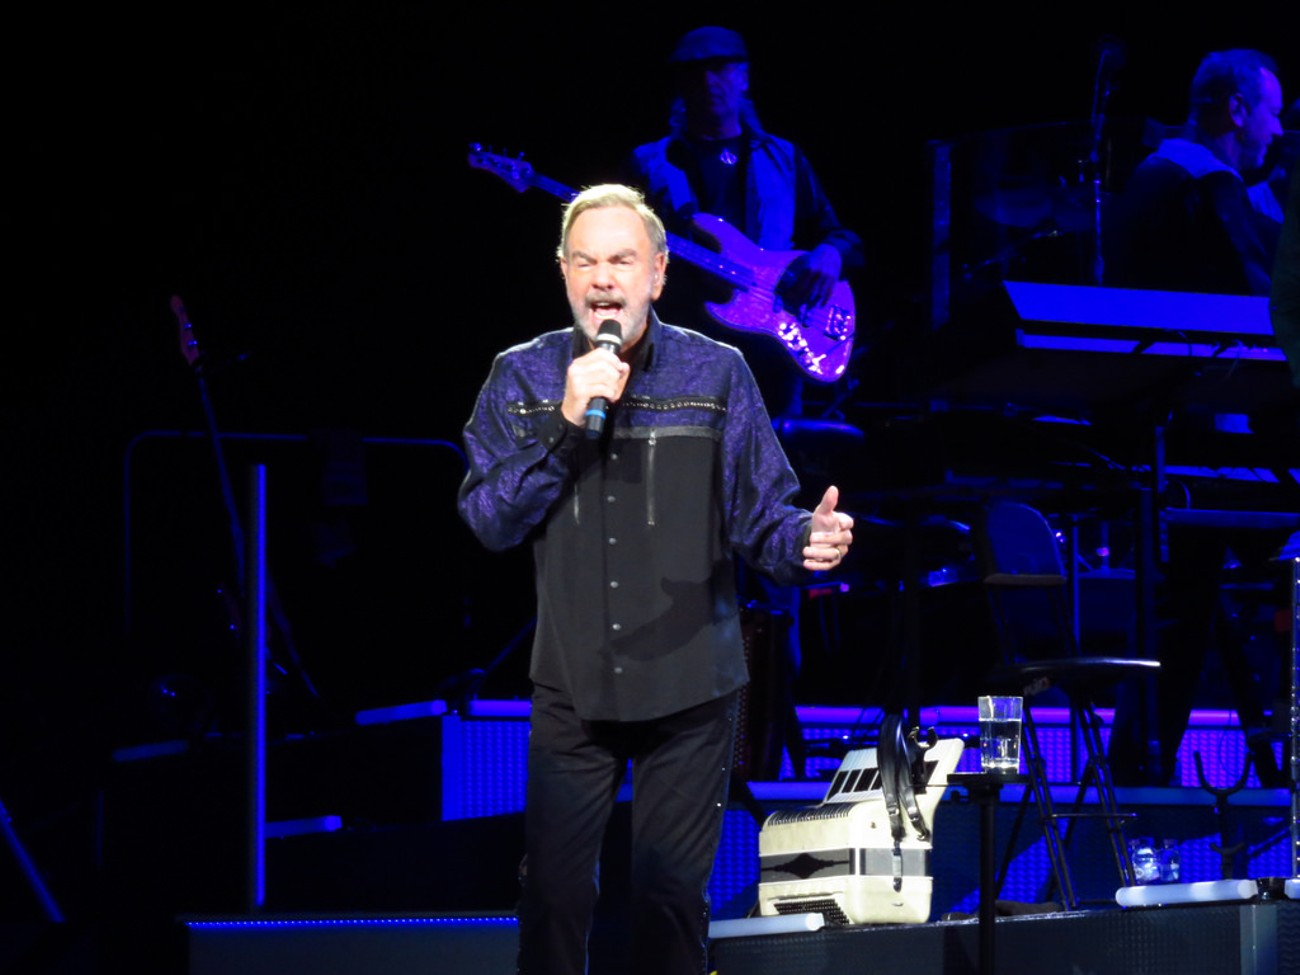 In concert at Leeds First Direct Arena 5th Oct 2017